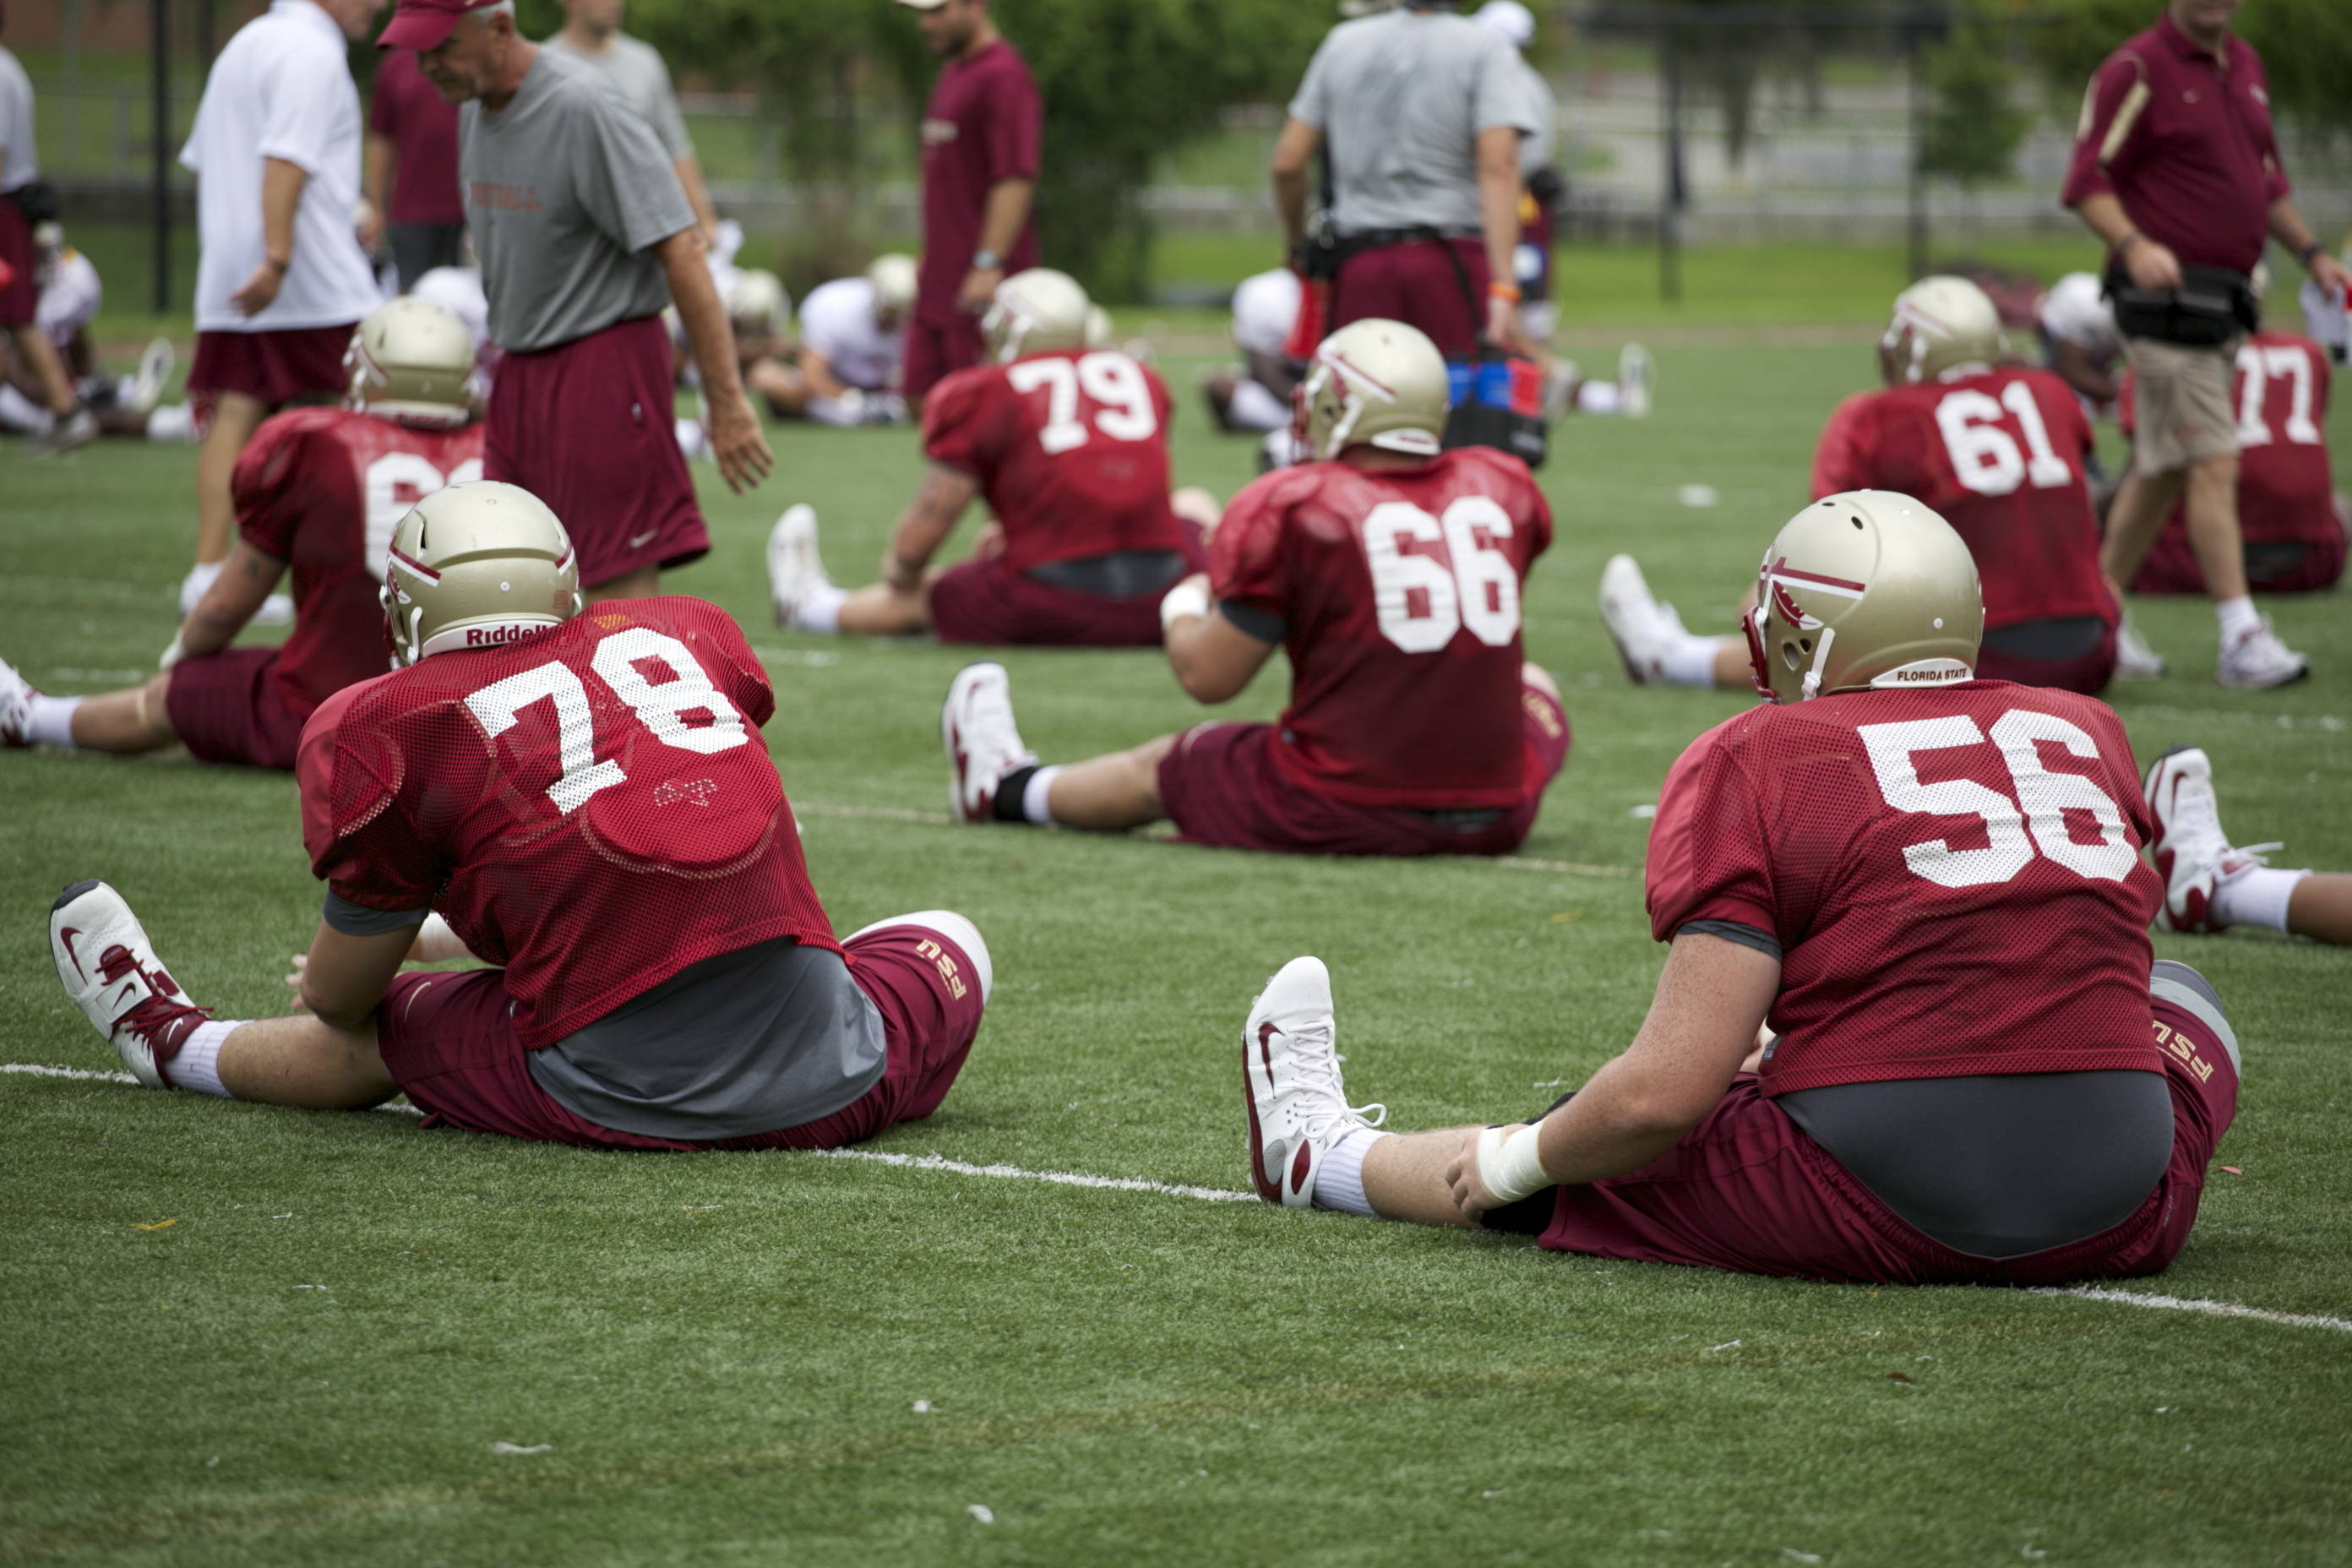 Offensive linemen stretching